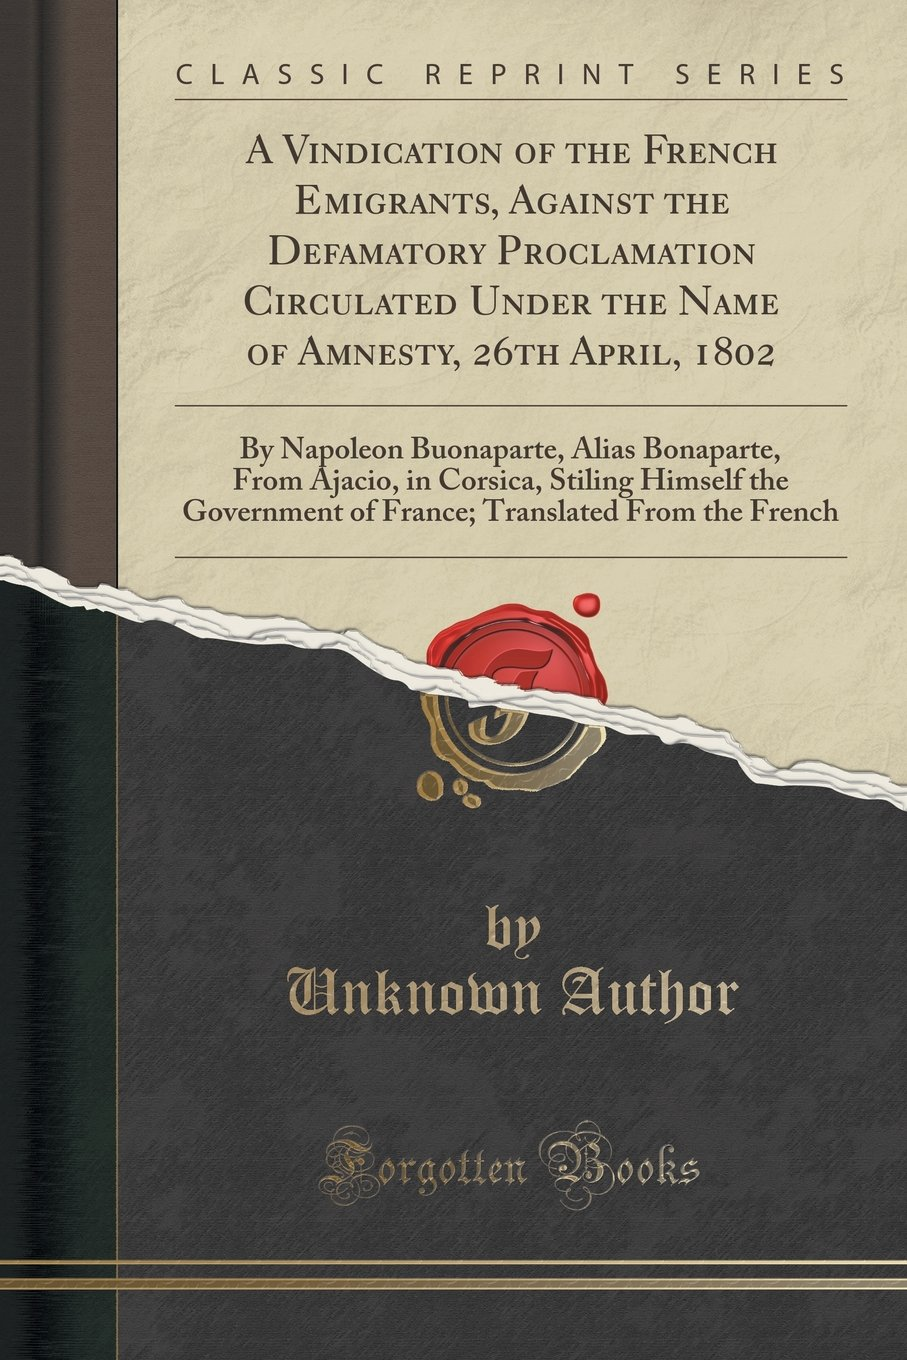 Download A Vindication of the French Emigrants, Against the Defamatory Proclamation Circulated Under the Name of Amnesty, 26th April, 1802: By Napoleon ... the Government of France; Translated From ebook